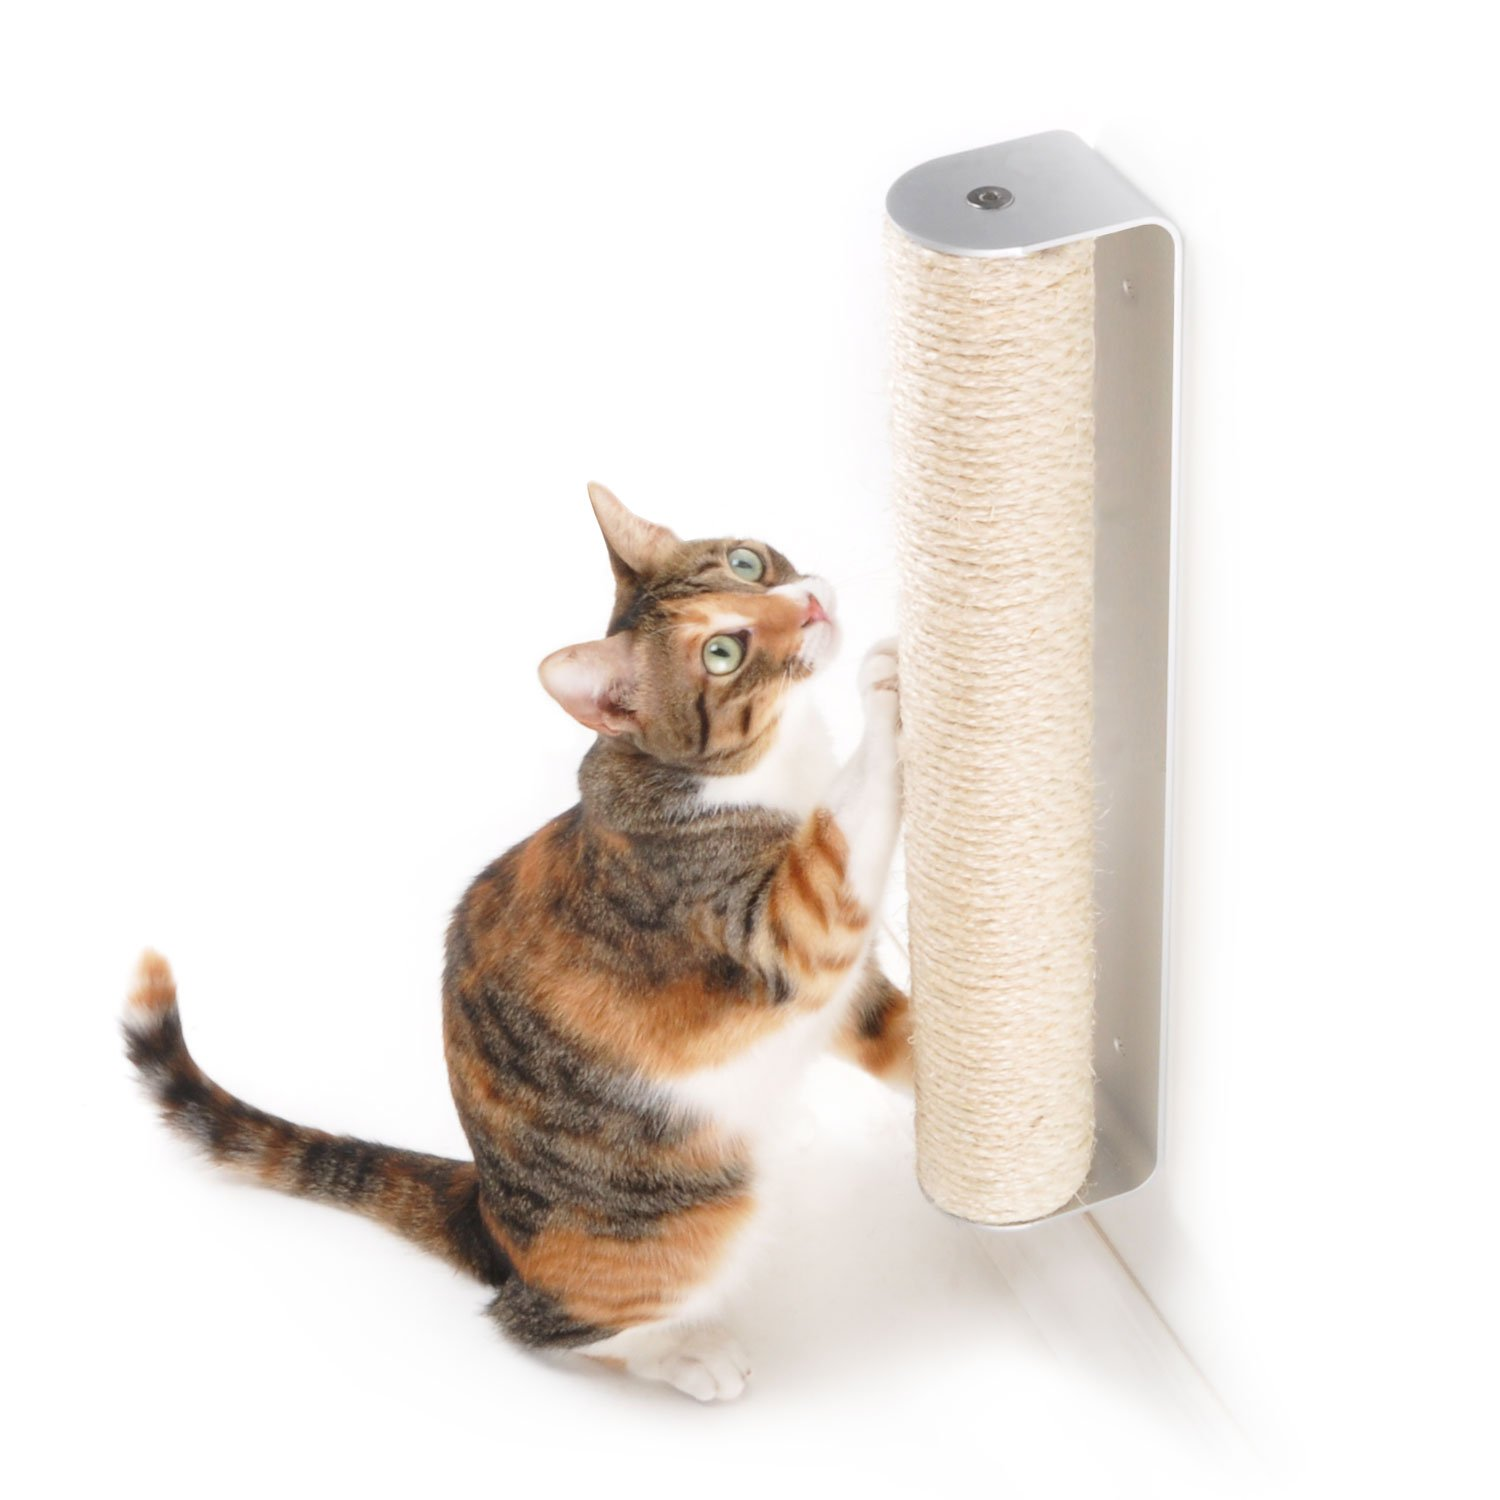 4CLAWS Wall Mounted Scratching Post 71cAqhxxP7L